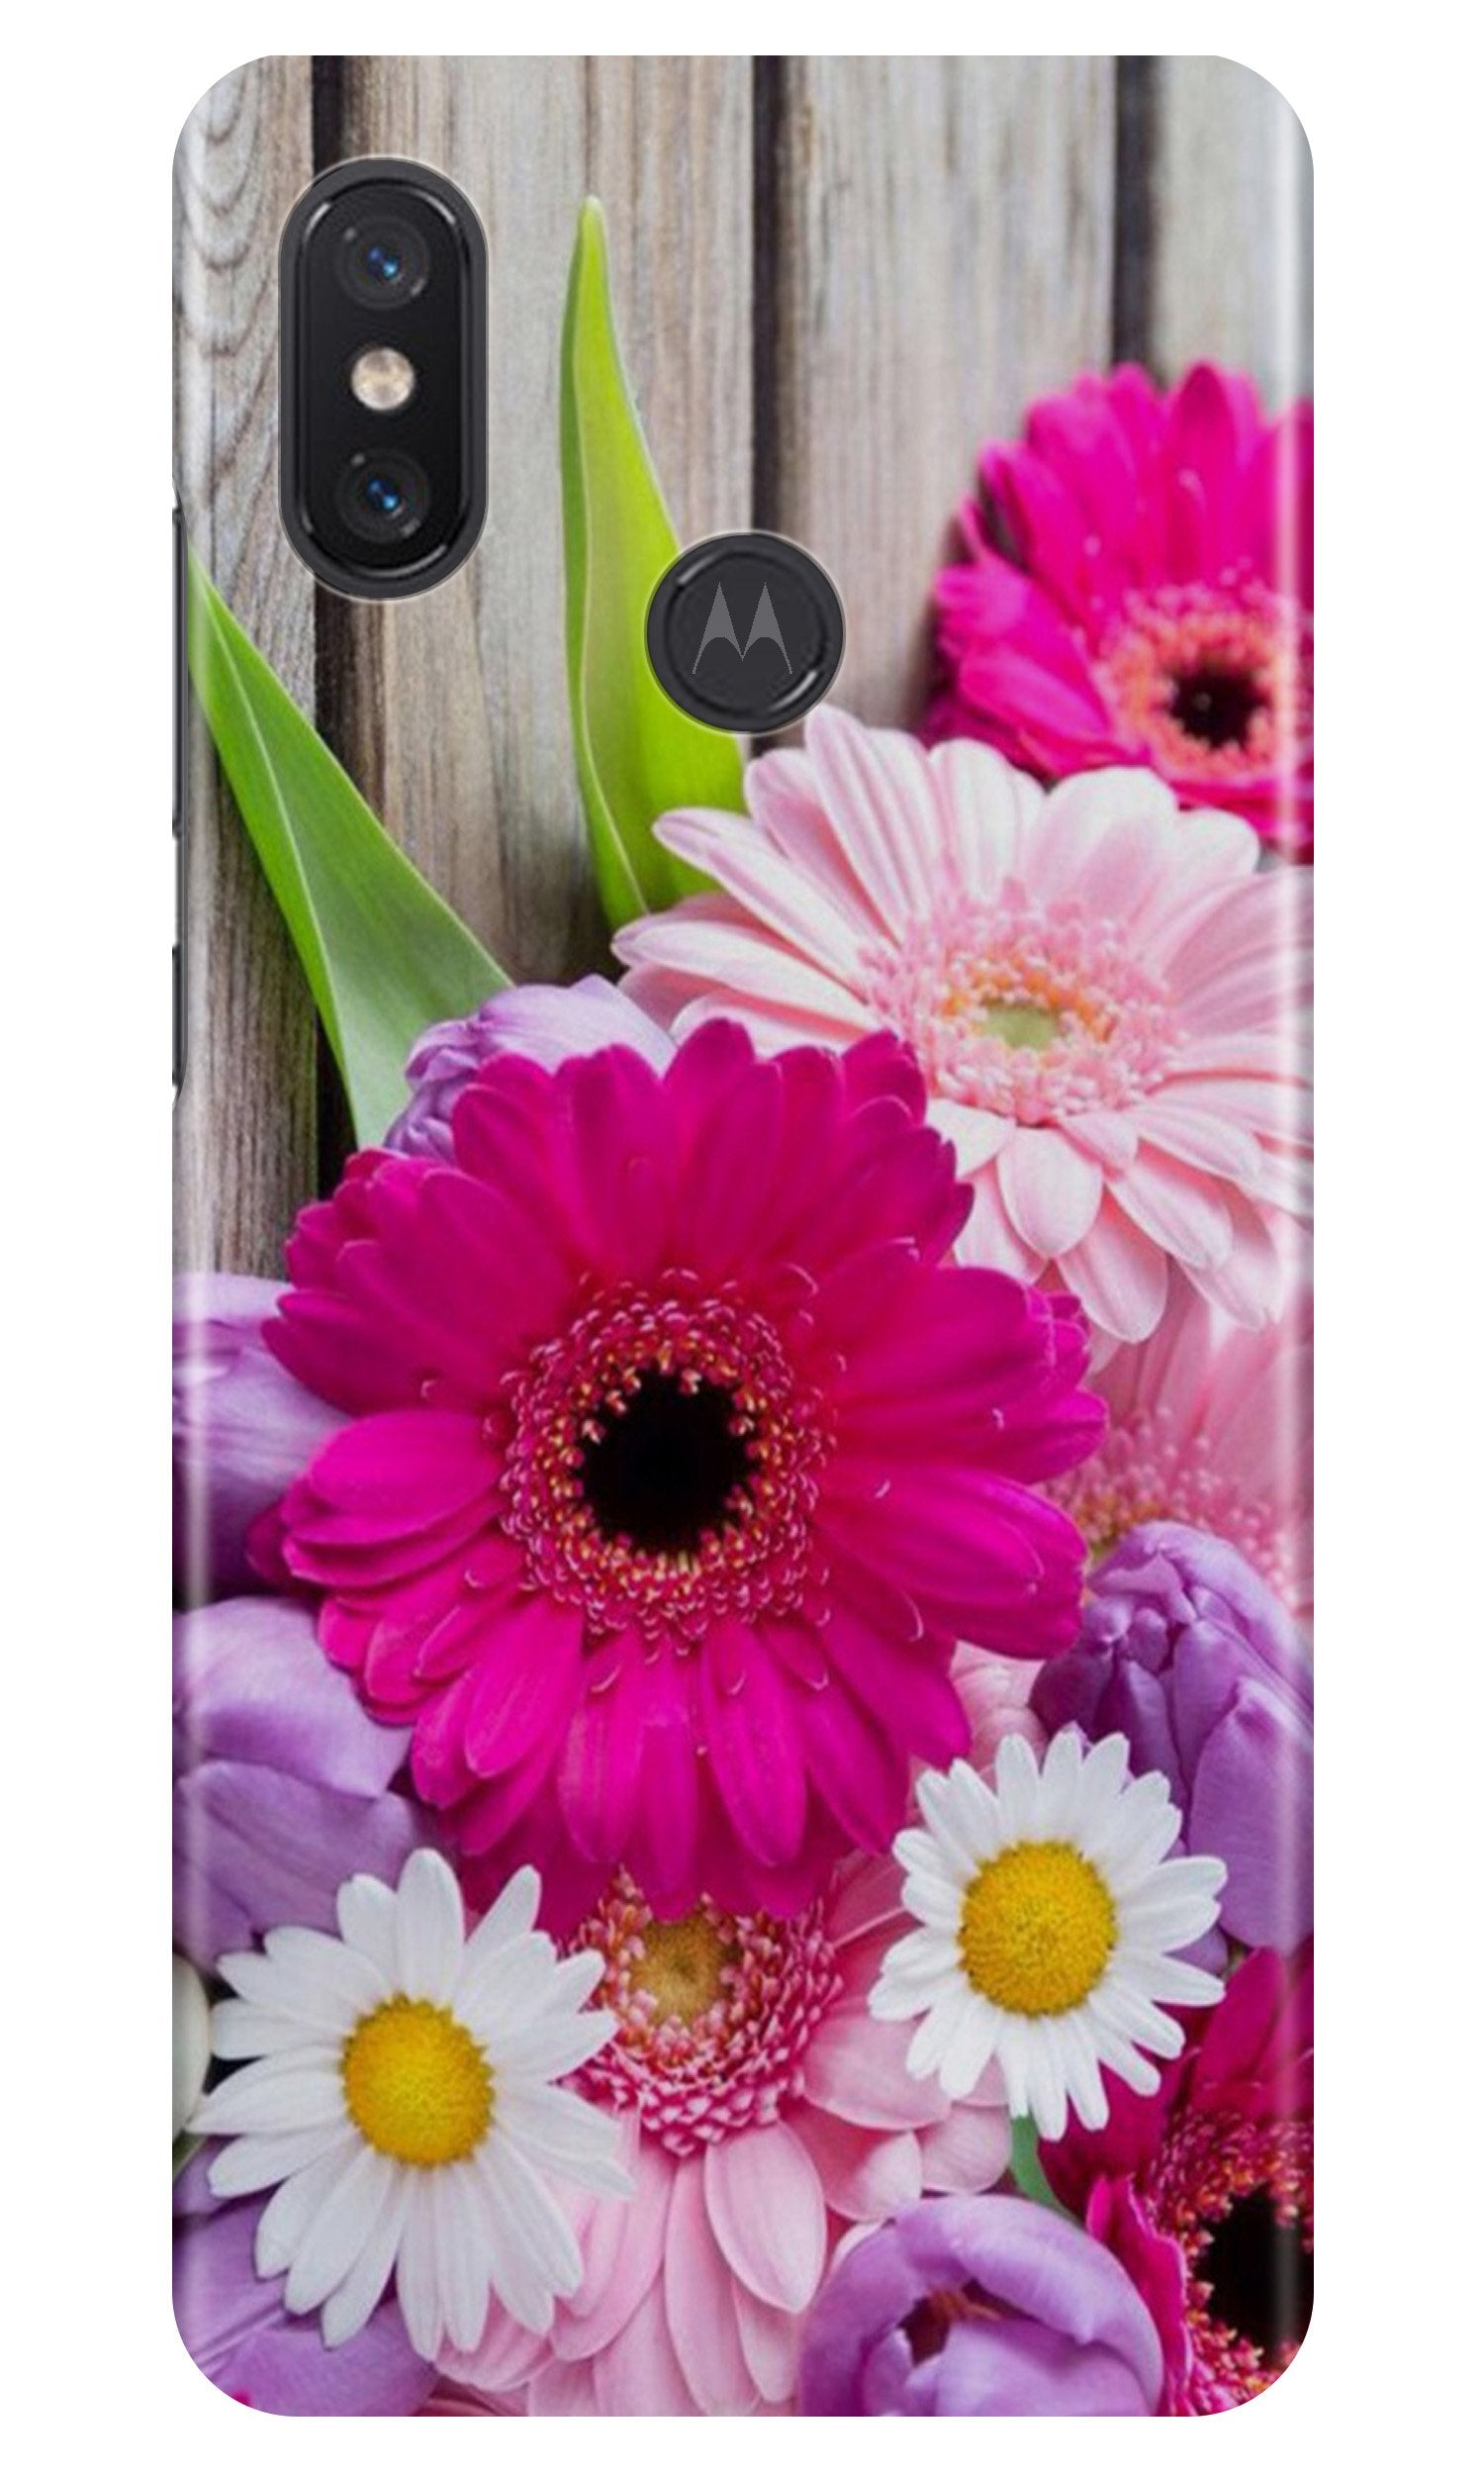 Coloful Daisy Case for Moto One Power